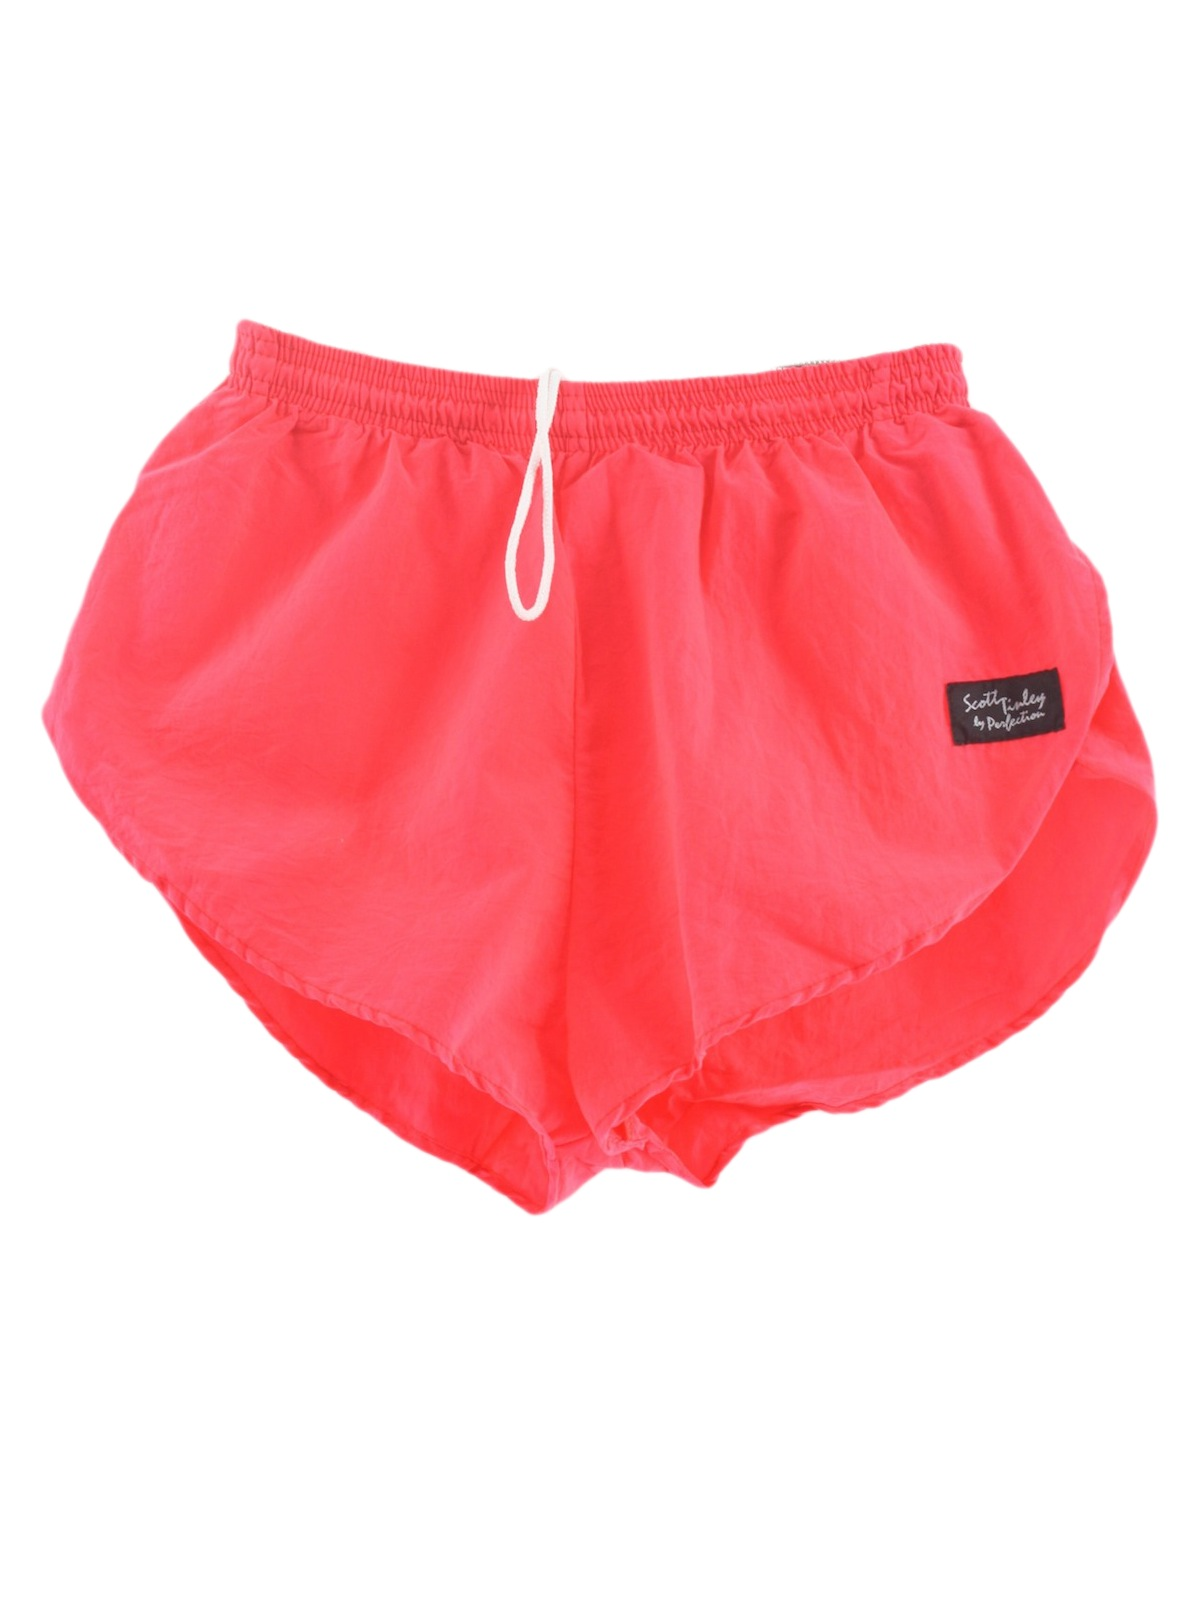 Retro Eighties Shorts: 80s -Scott Tinley- Mens bright red ...